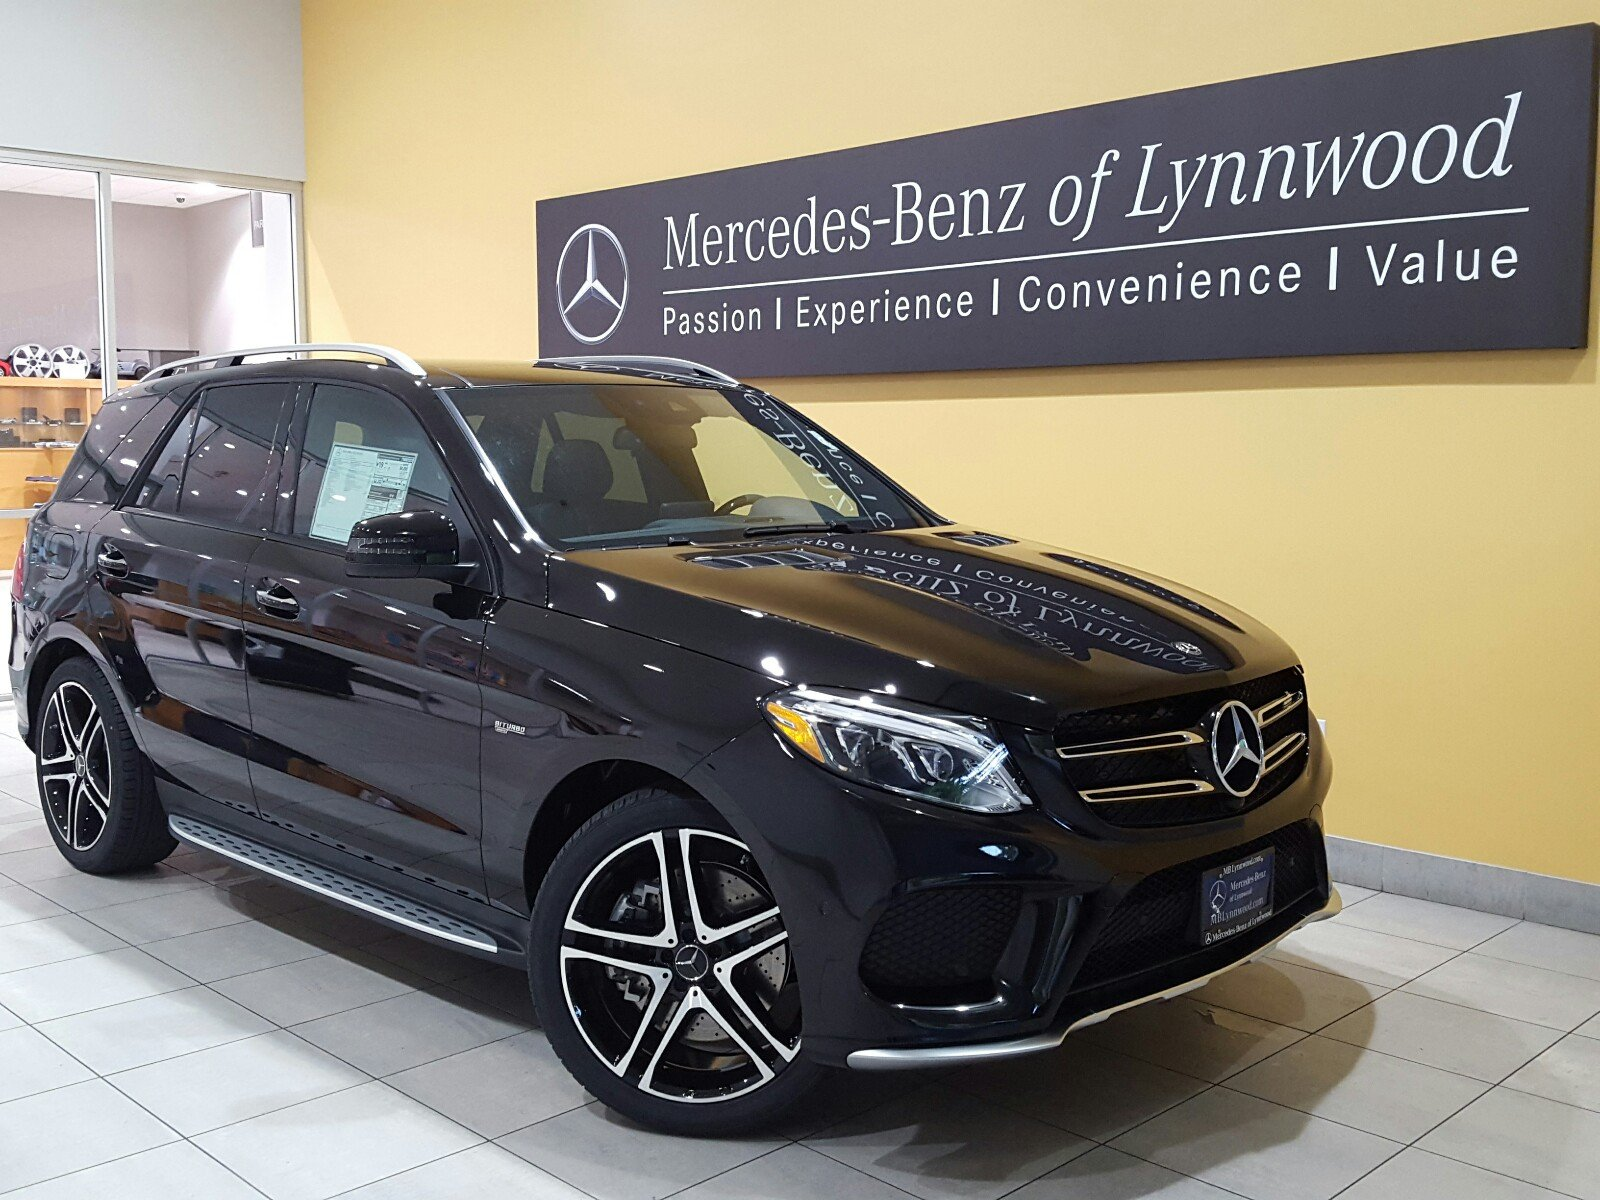 new 2018 mercedes benz gle amg gle 43 4matic suv in lynnwood 28387 mercedes benz of lynnwood. Black Bedroom Furniture Sets. Home Design Ideas